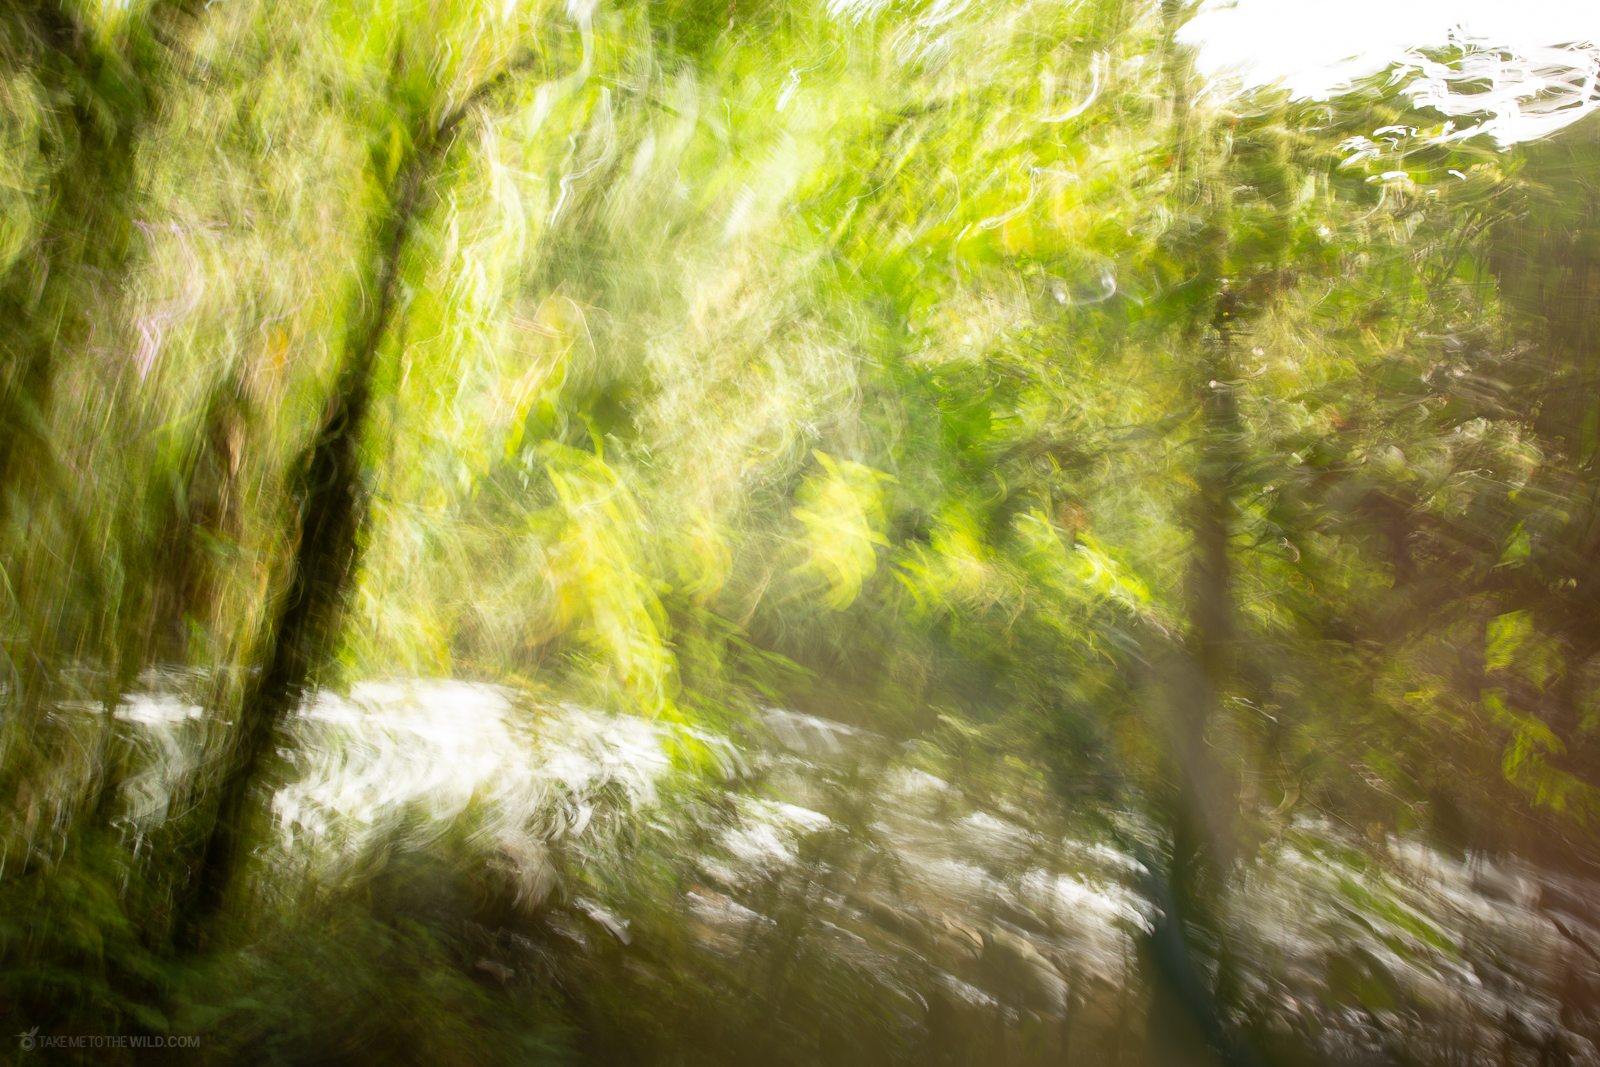 Long exposure photography of Otún River at Otún Quimbaya Flora and Fauna Sanctuary, Colombia. I especially like the brush like effect